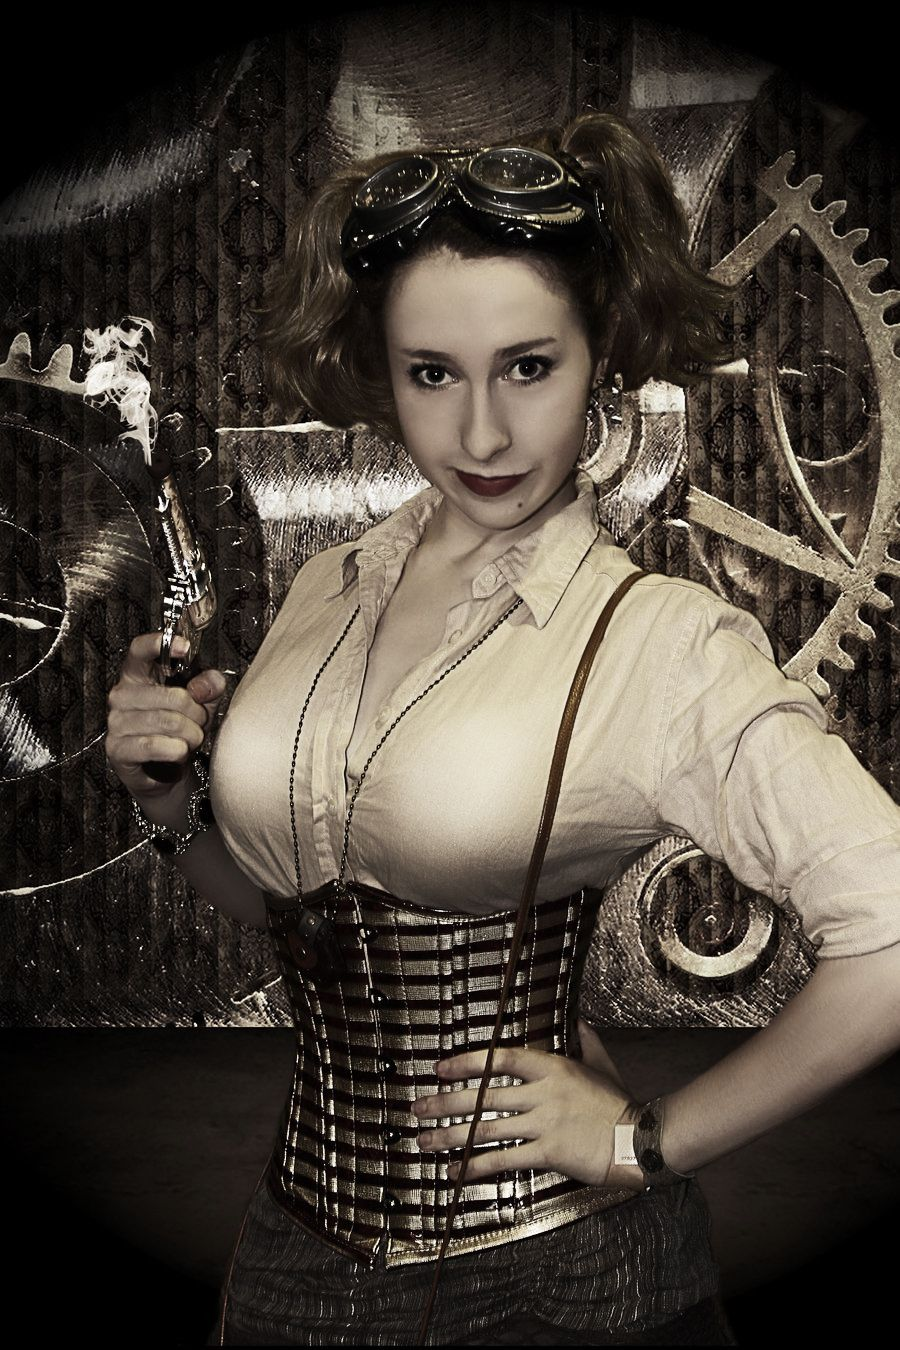 y steam punk Steampunk girls dress up play fun sensual